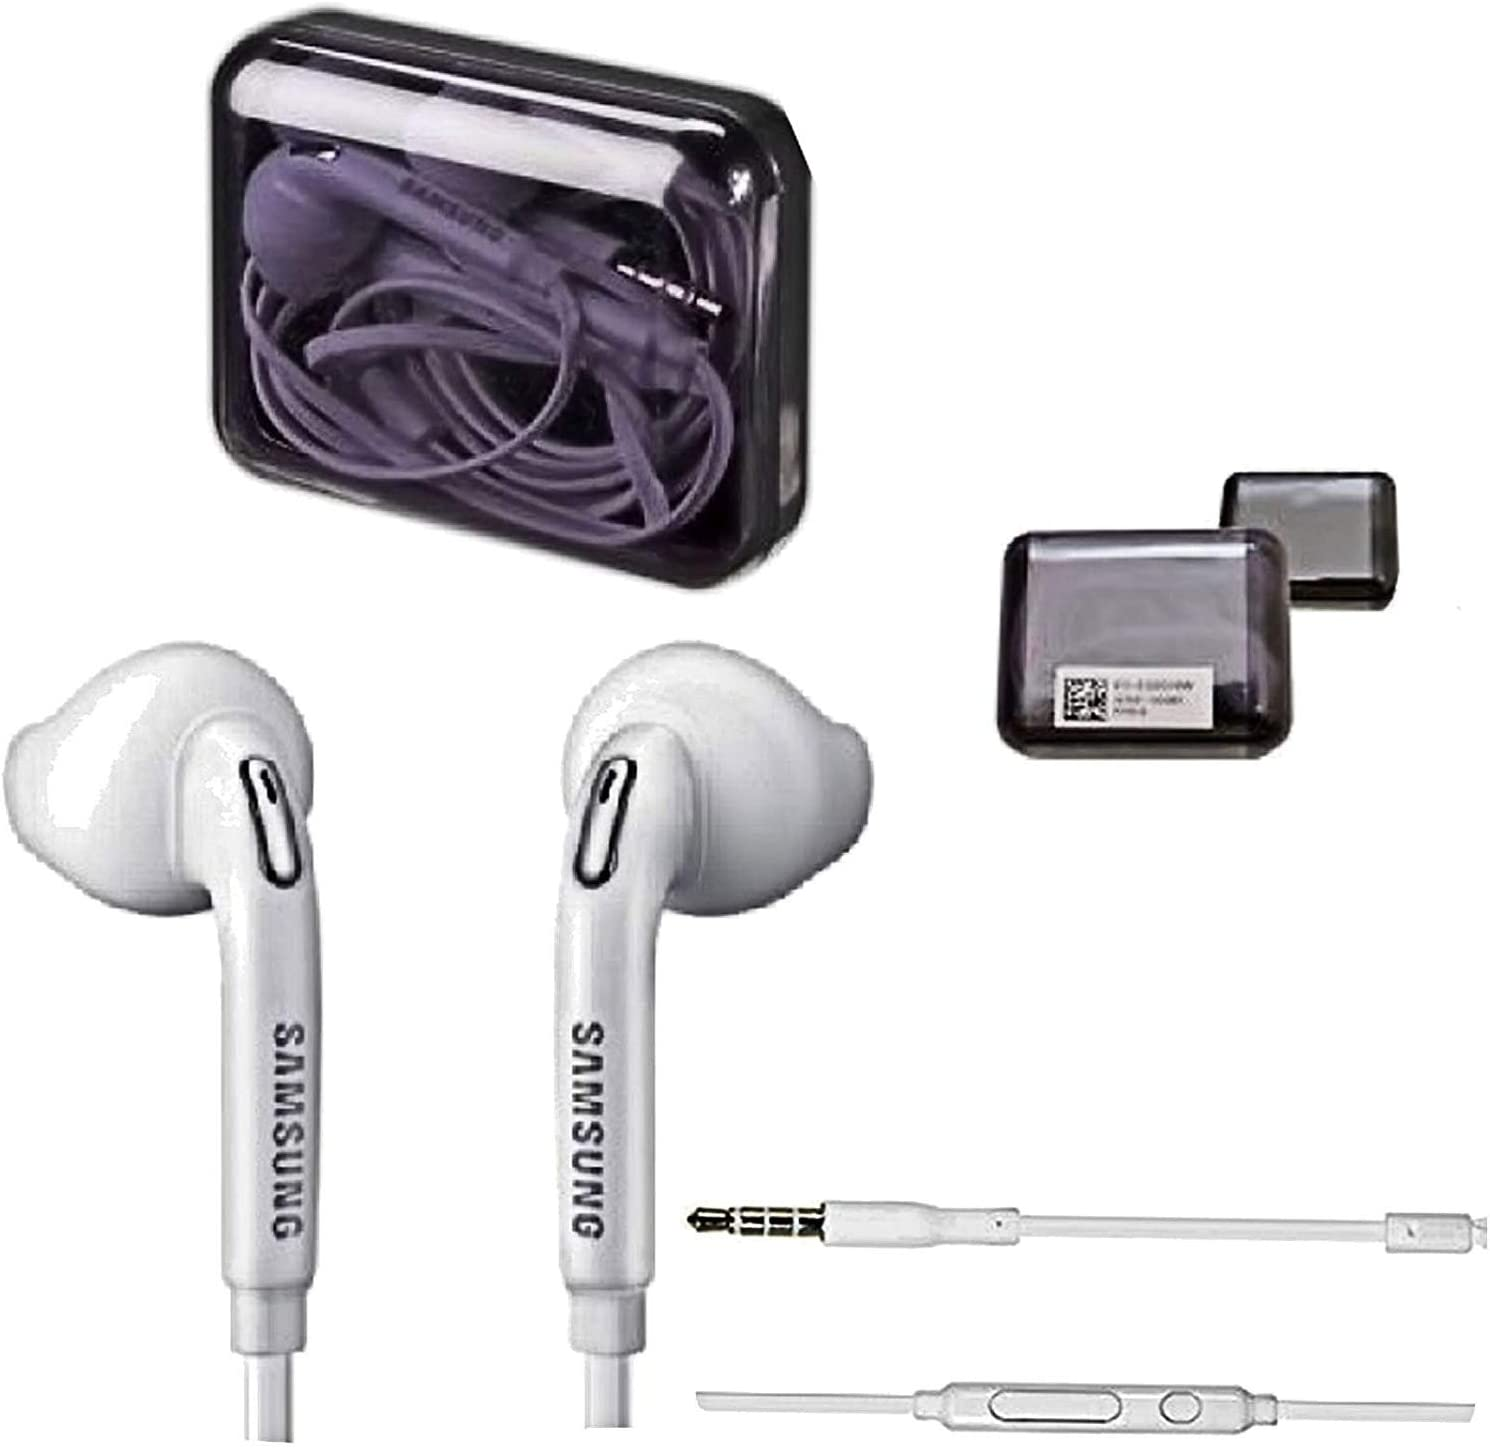 SAMSUNG Premium Headset Jewel Case Box - Auriculares in-Ear (Manos Libres, Compatible con teléfonos móviles con Clavija de 3,5 mm), Color Blanco